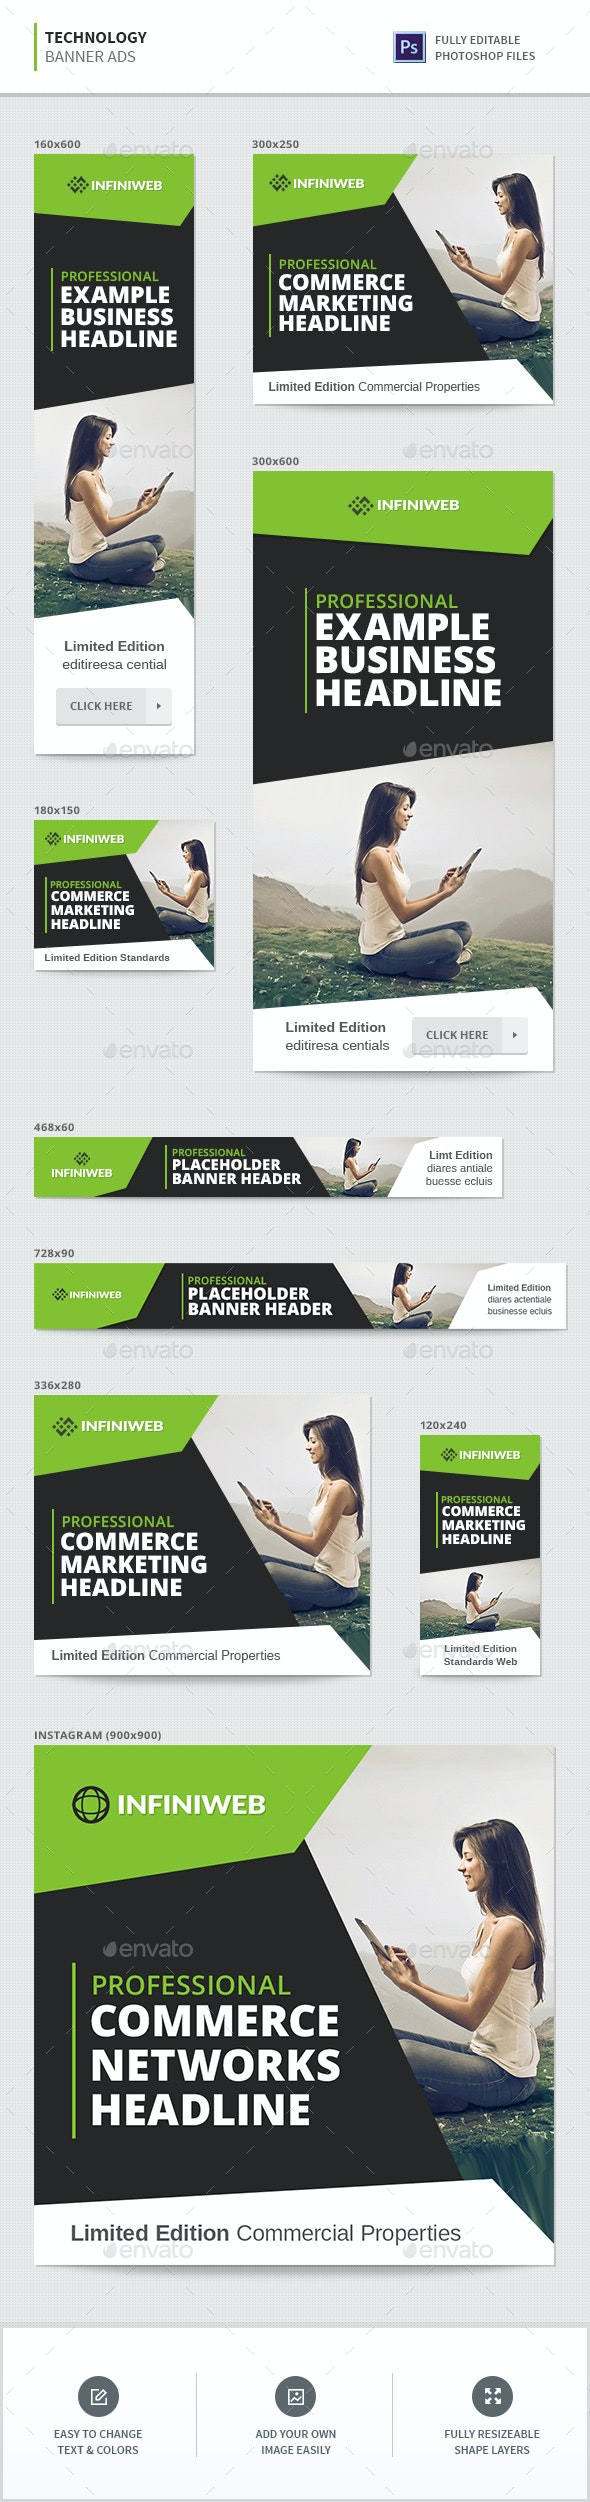 Technology Banners - Banners & Ads Web Elements